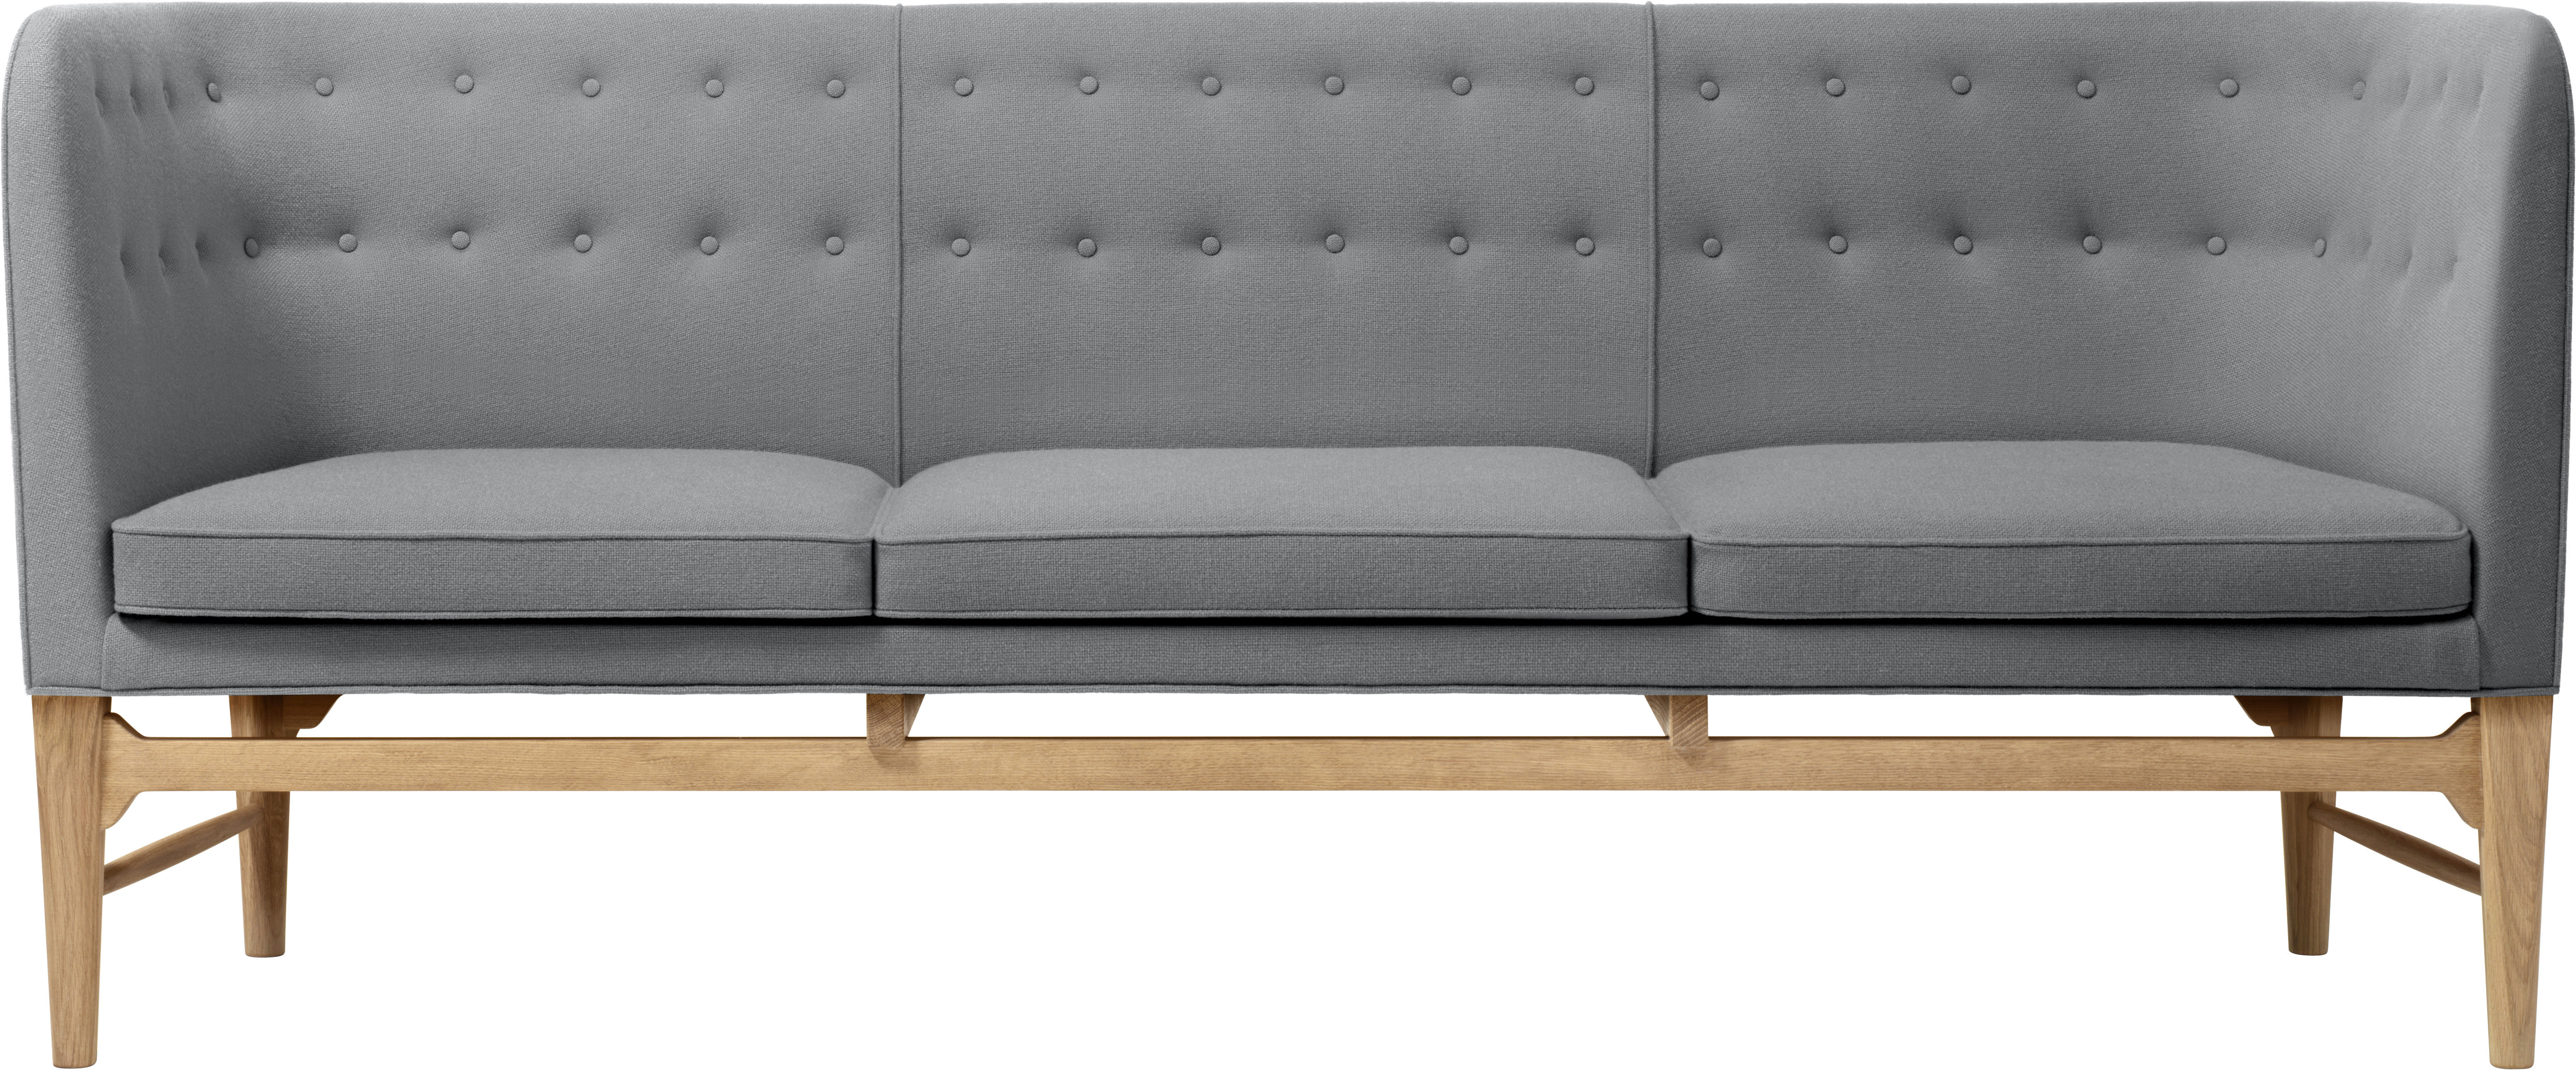 Furniture Sofas Mayor Sofa Straight 3 Seats Arne Jacobsen 1939 By